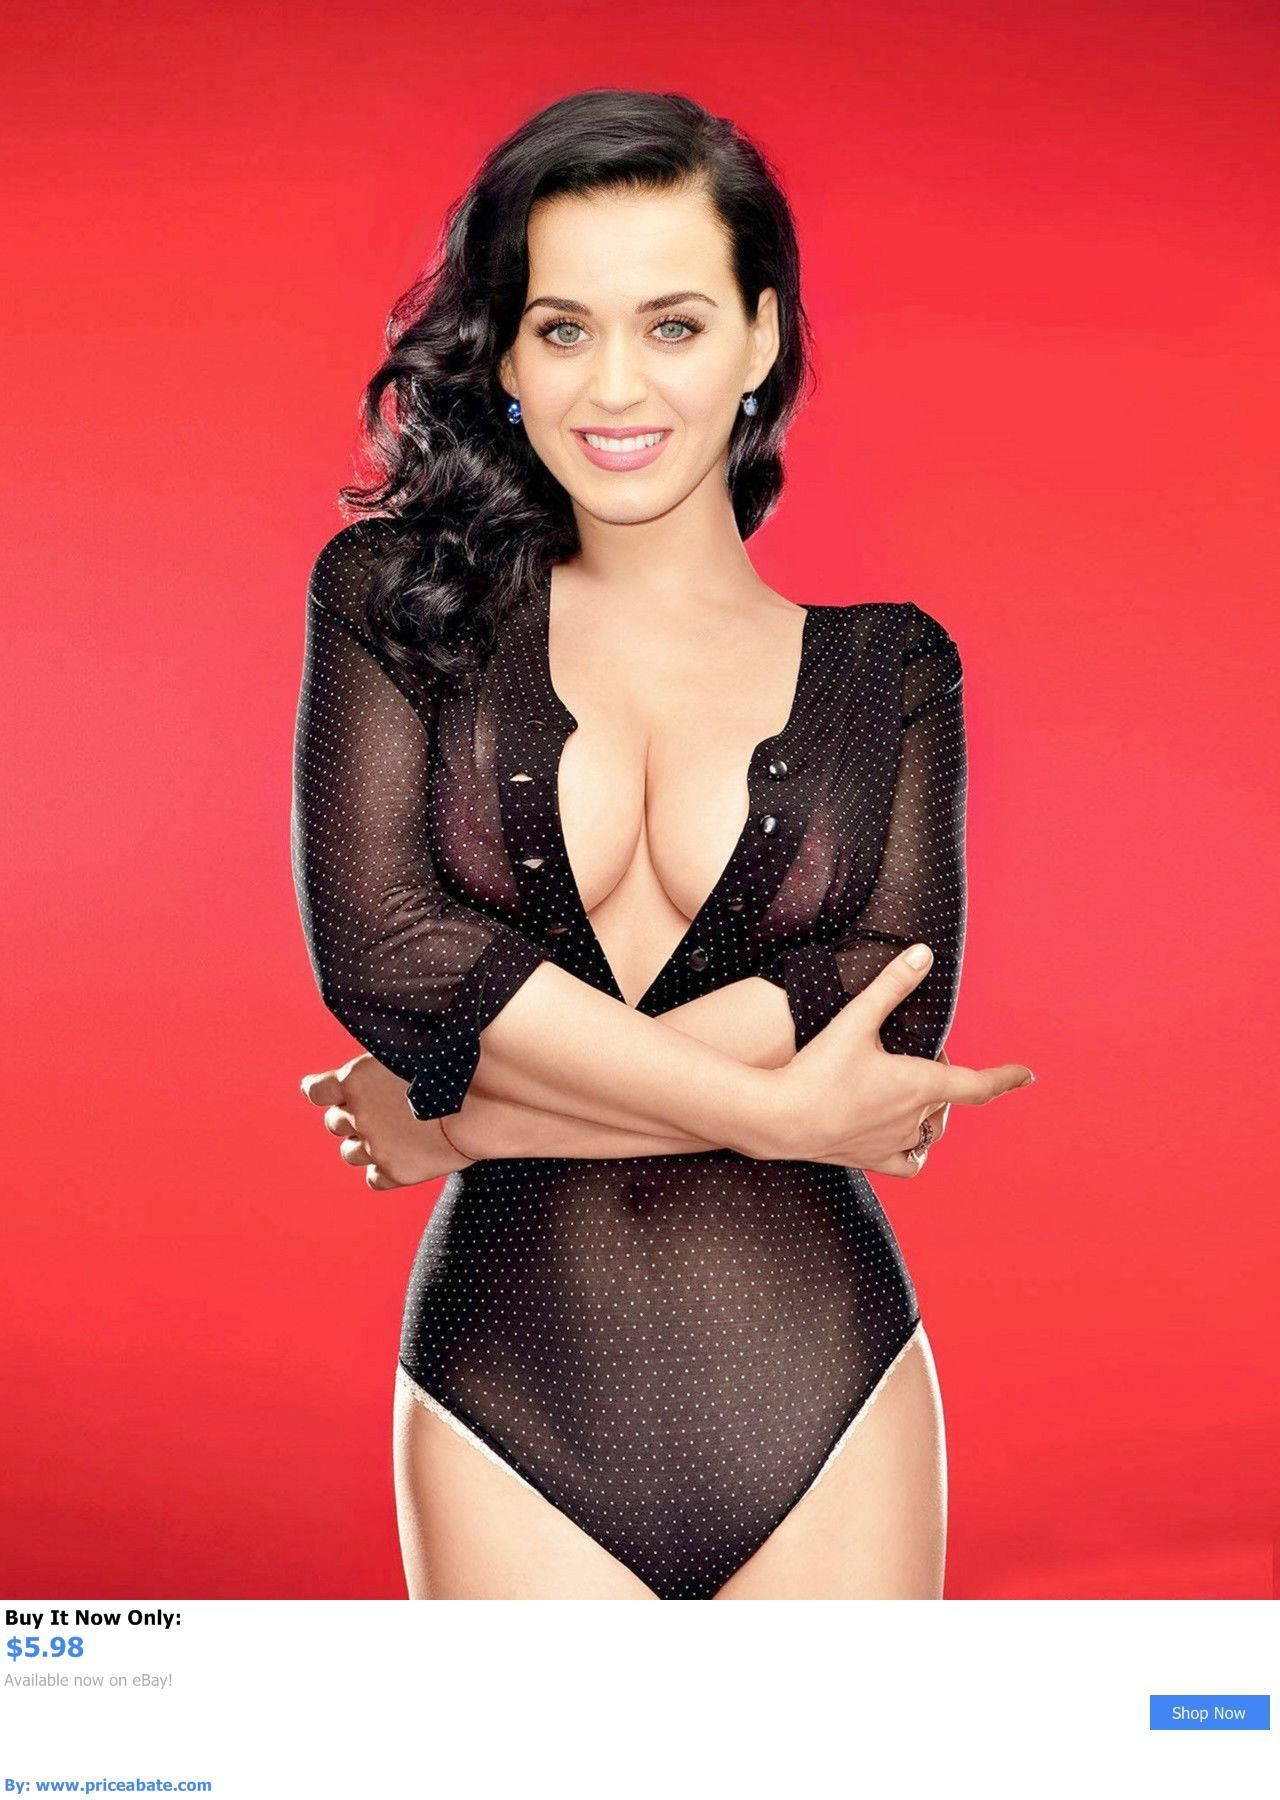 Pingl Sur Katy Perry-5533